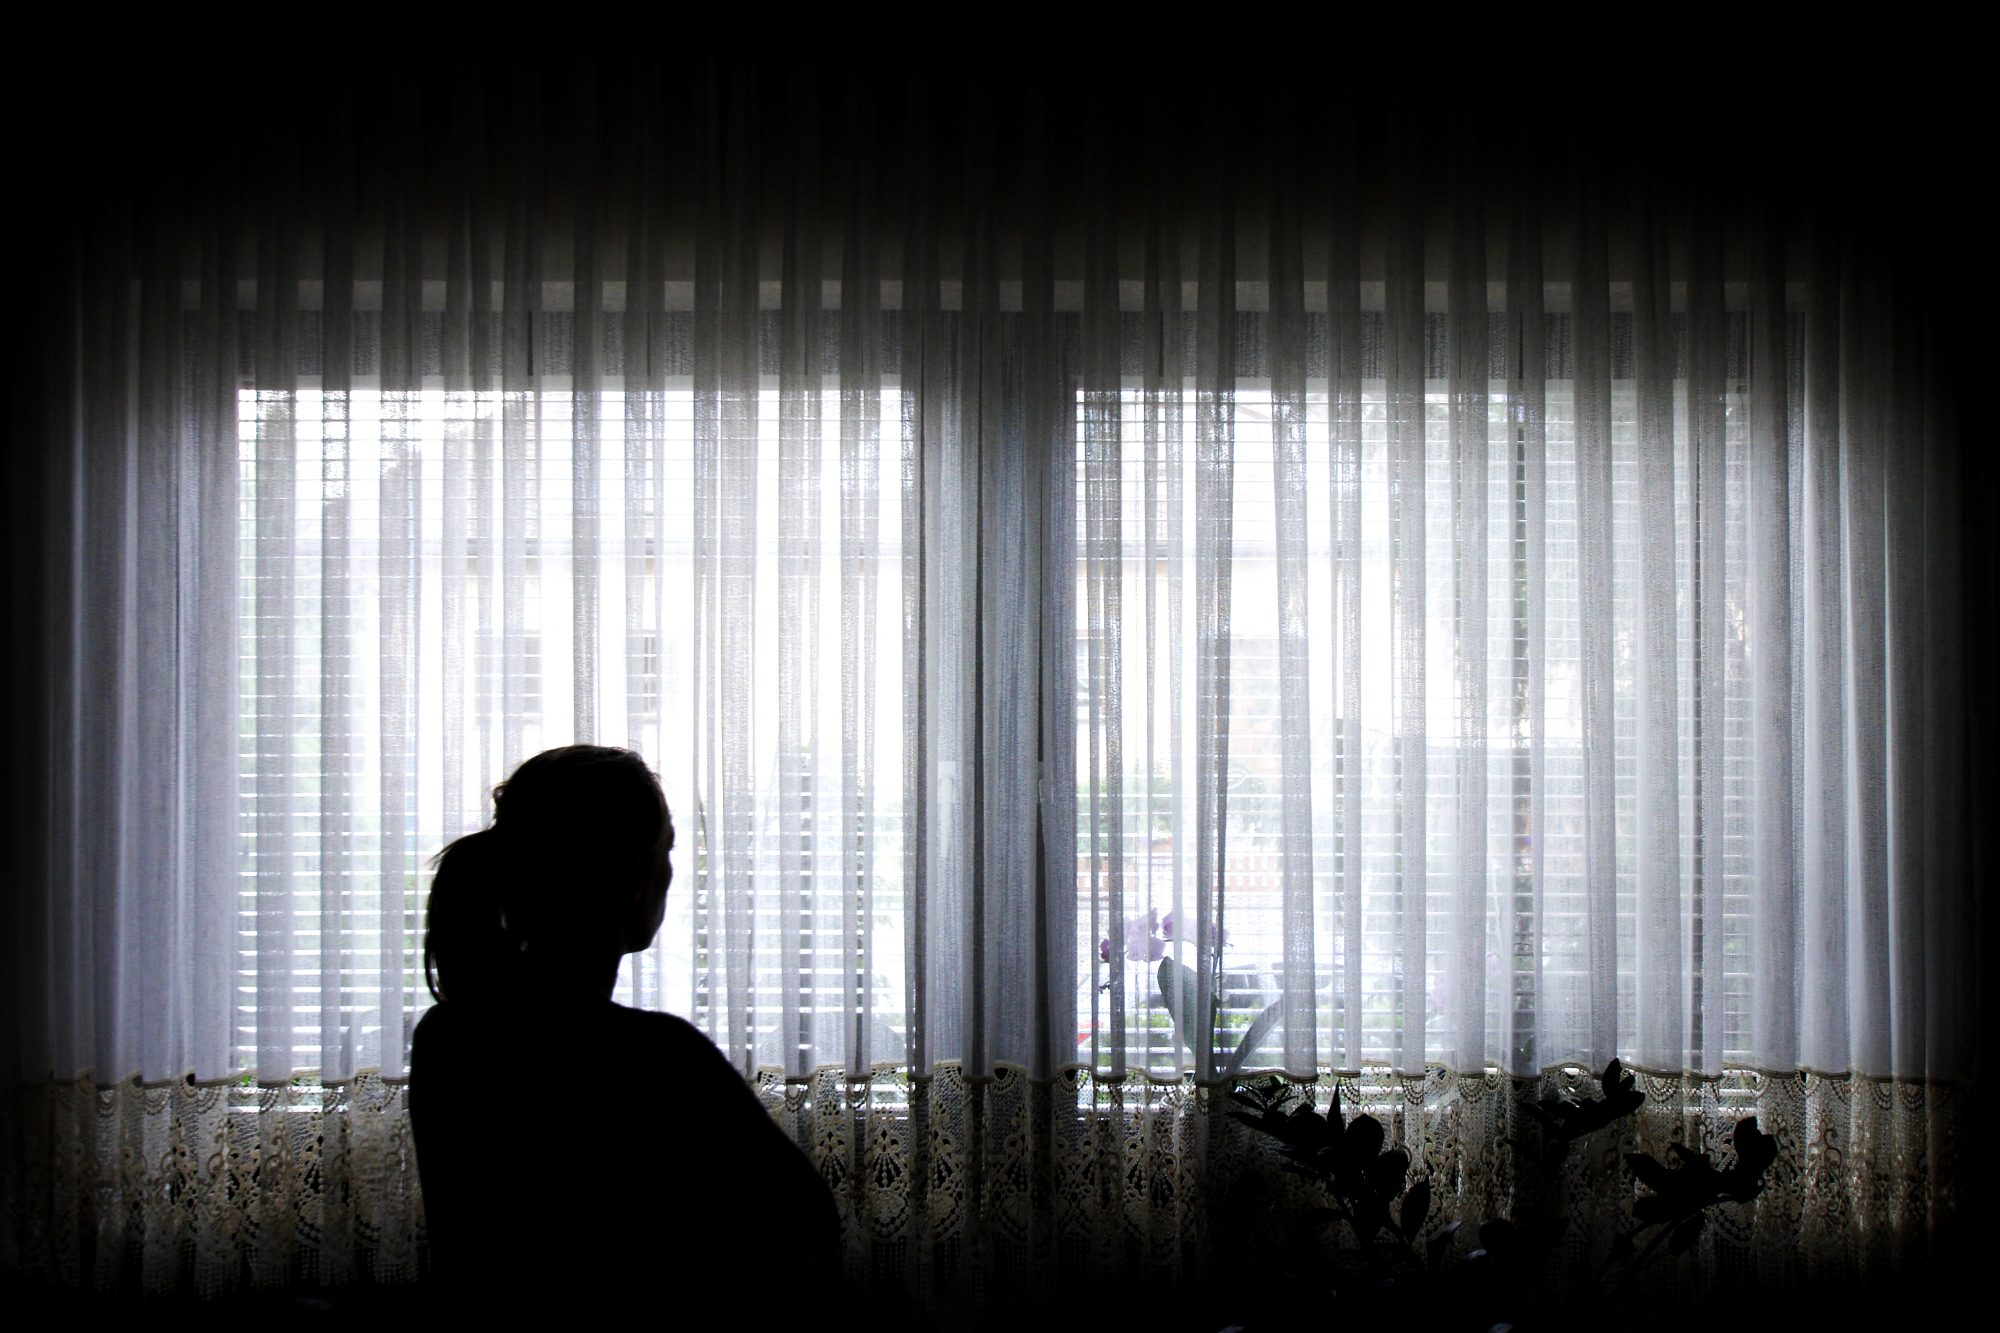 Silhouette of Woman Staring Out Window